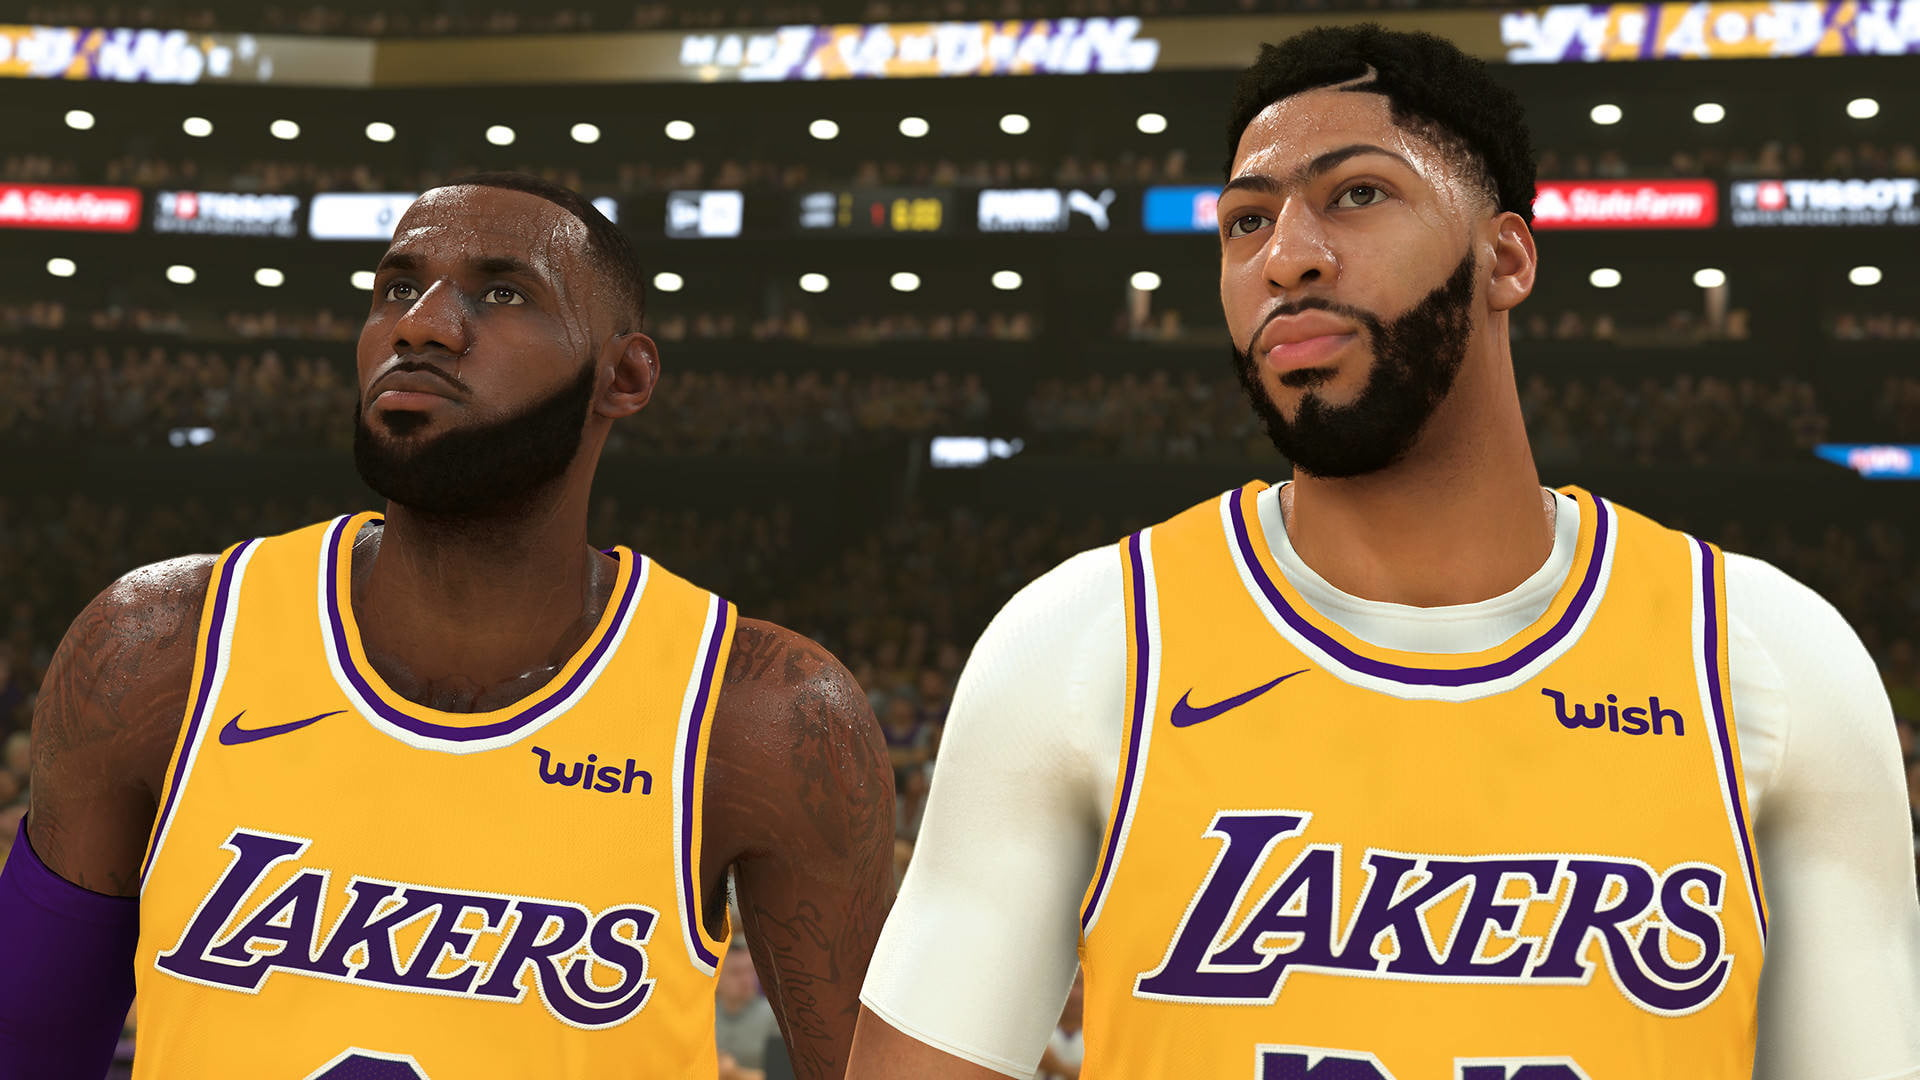 Nba 2k20 Release Date Modes Story Gameplay Changes And More